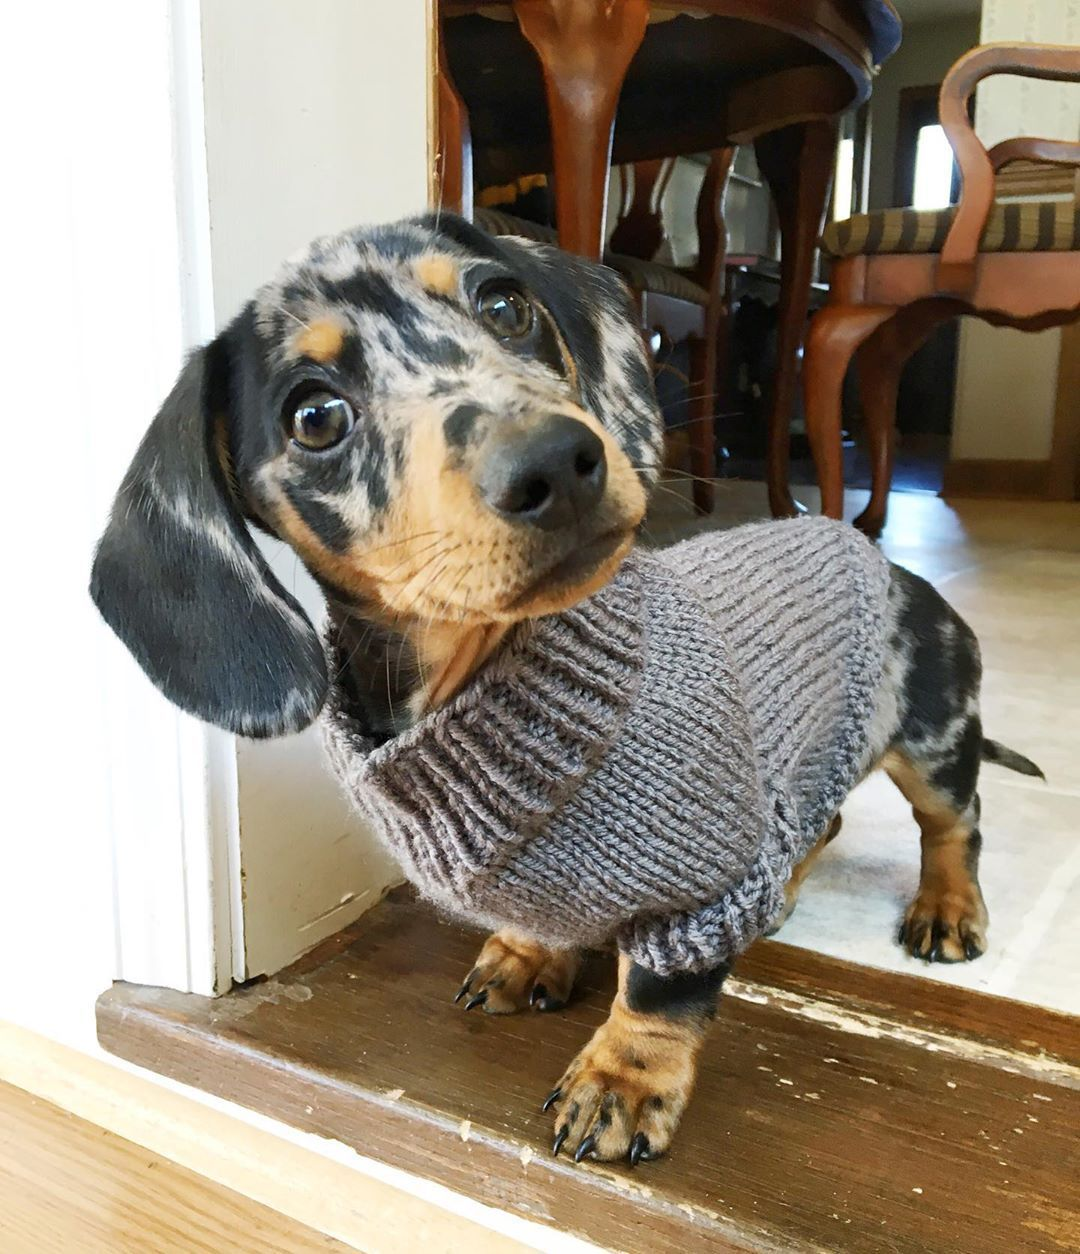 Adorable Dapple Dachshund Visit Our Blog Dachshund Central Com To Find The Be Dapple Dachshund Dapple Dachshund Miniature Cute Little Animals